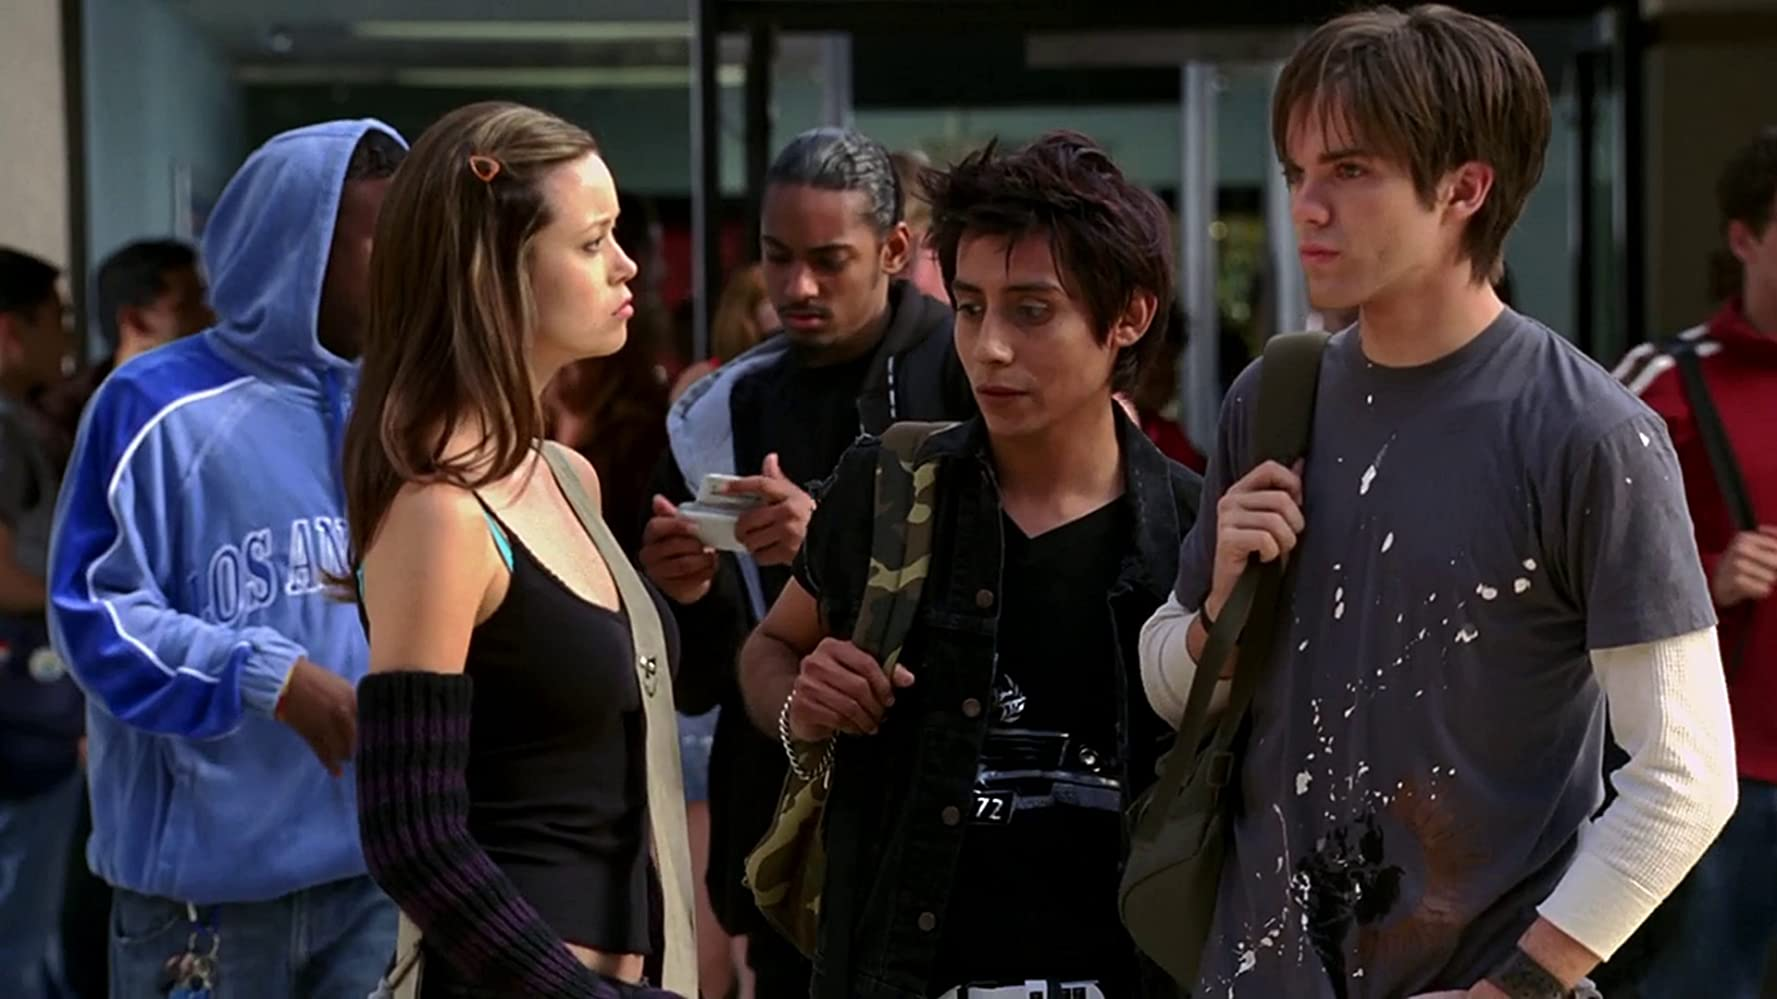 Luis Chávez and Summer Glau in Terminator: The Sarah Connor Chronicles (2008)